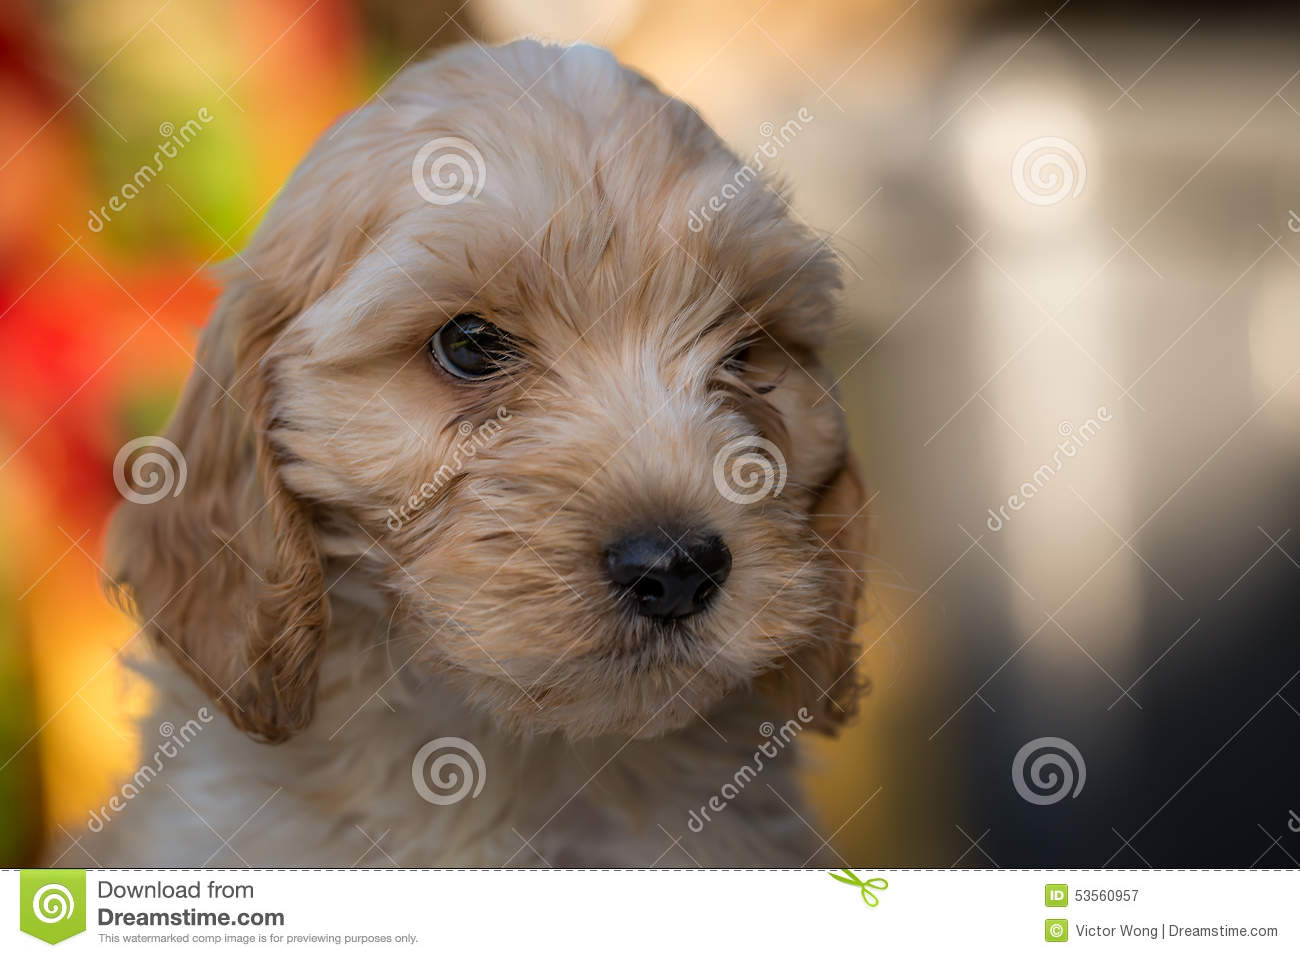 Spoodle Or Cockapoo Puppy Stock Image Image Of Shot 53560957